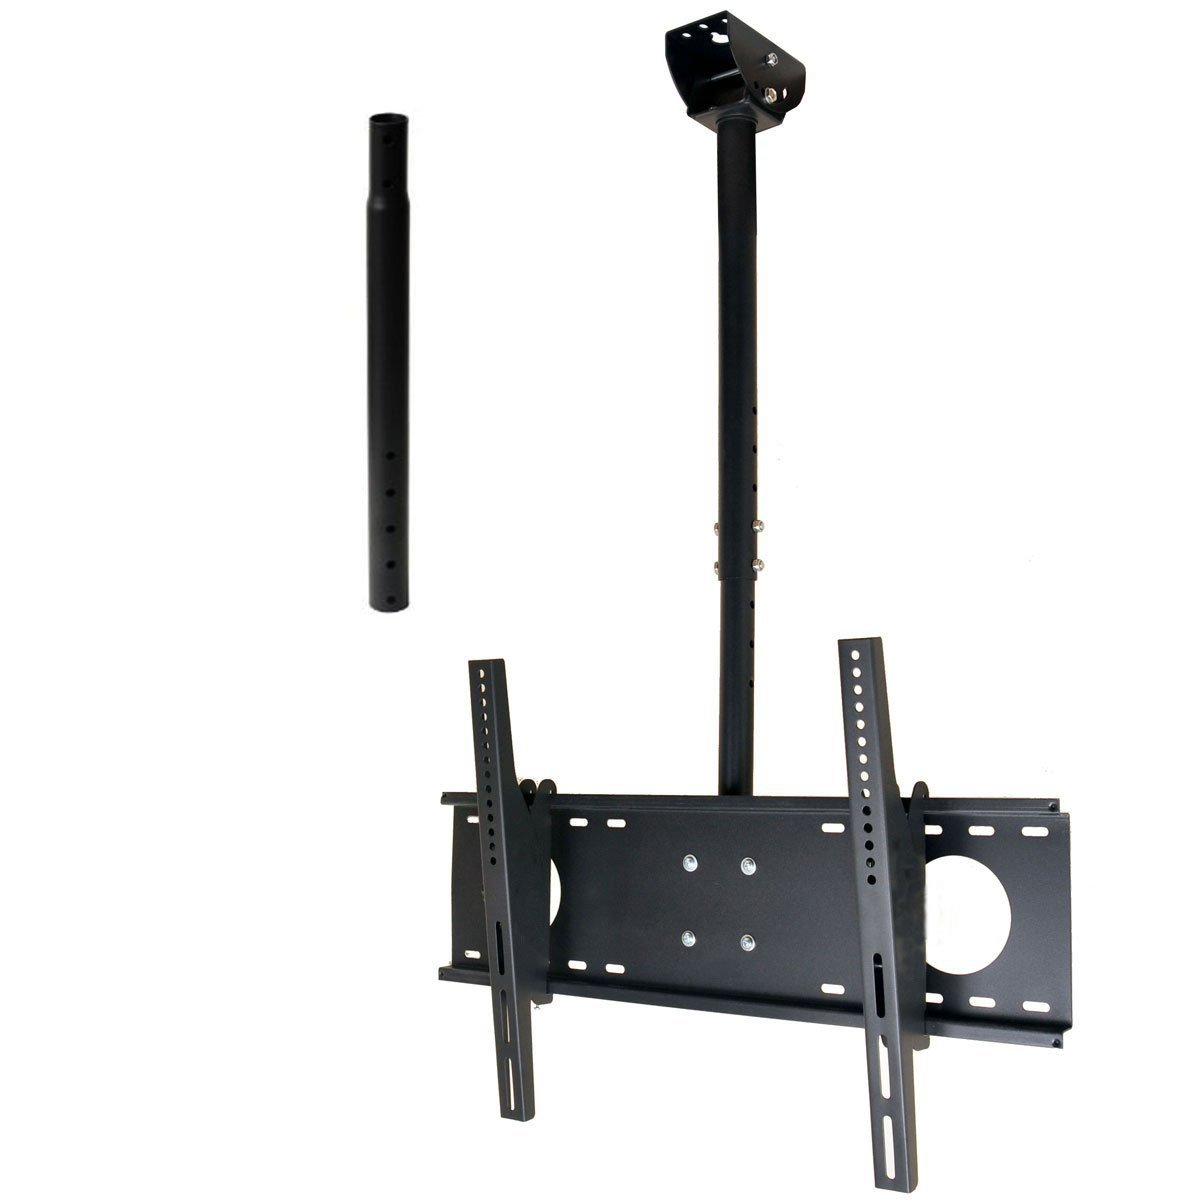 VideoSecu Adjustable Tilting Ceiling Mount for Most 37''-60'' LCD LED Plasma TV Flat Panel Display, Some up to 75'' LED TV Fits Flat or Vaulted Ceiling Extending 26-55'' MPC53BE 1UO